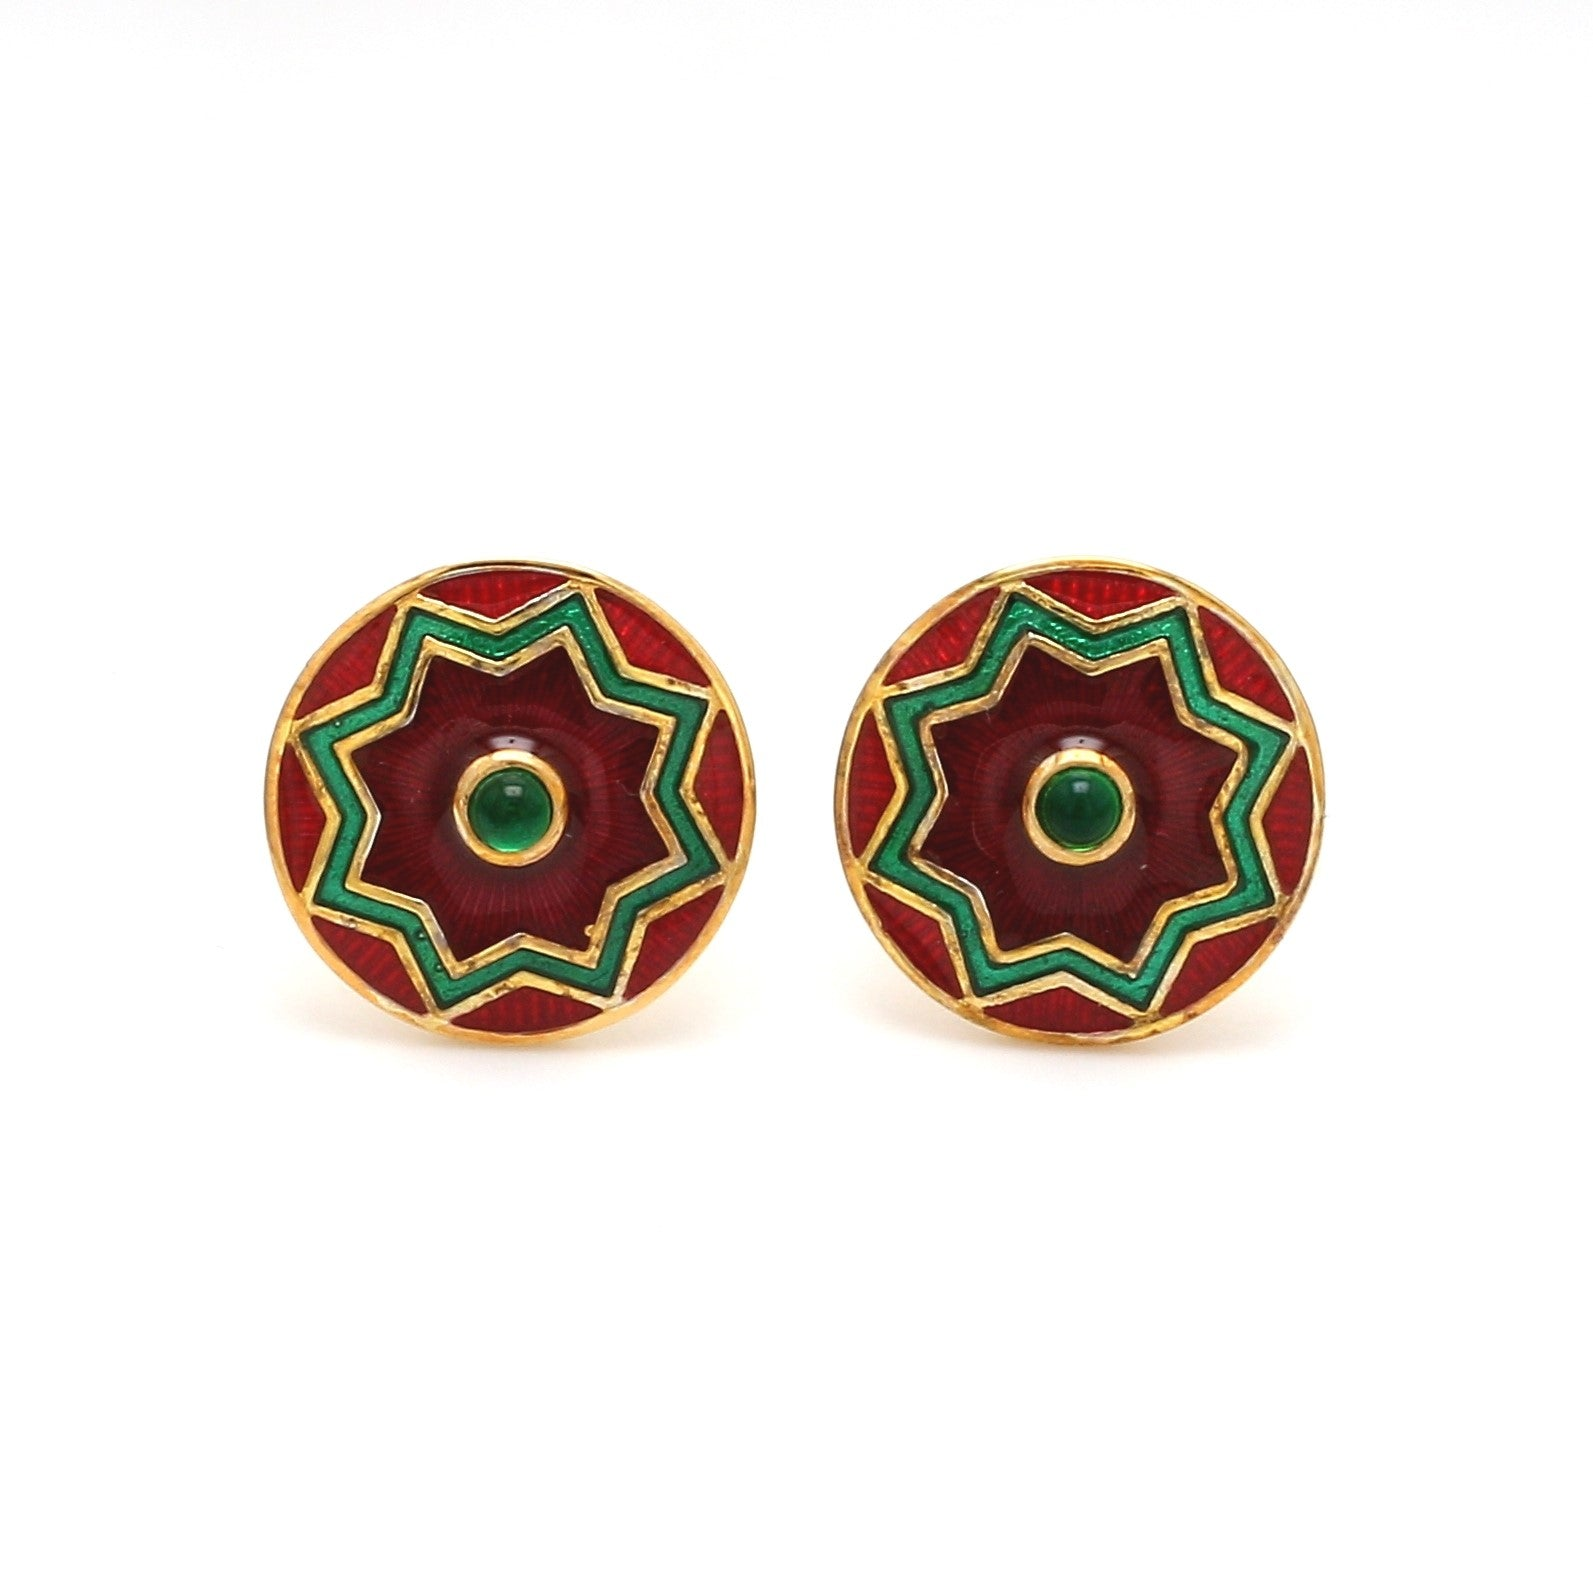 Front View of 925 Silver Cufflinks for Men with Red & Green Enamel JL AGC 8